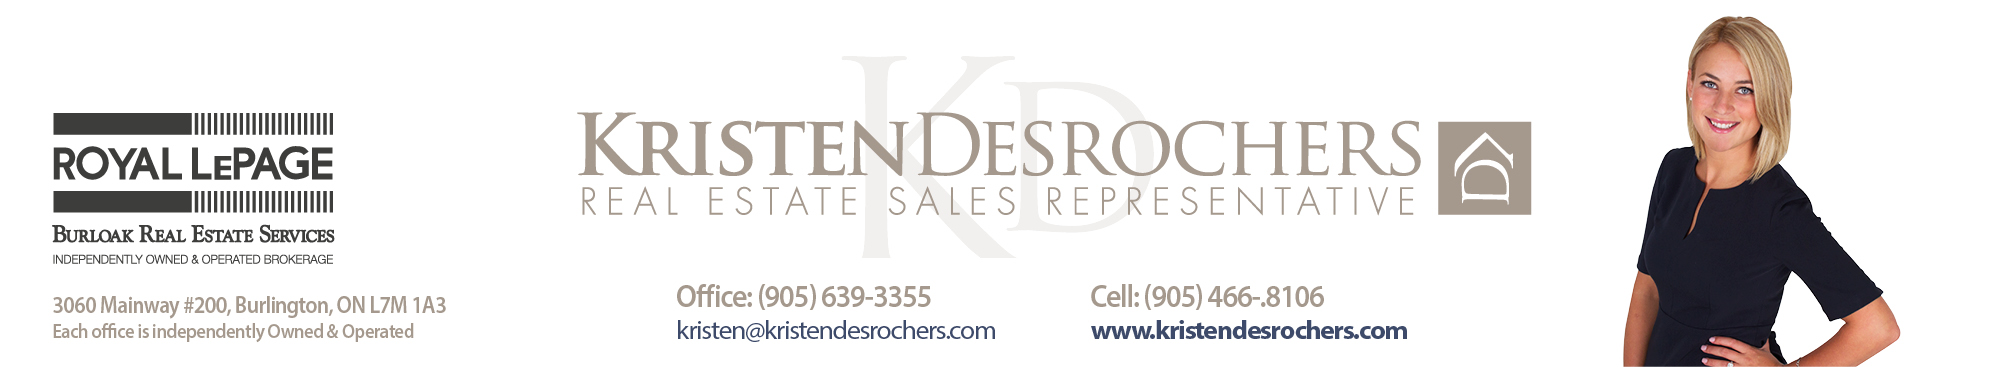 Kristen Desrochers - Burlington Real Estate